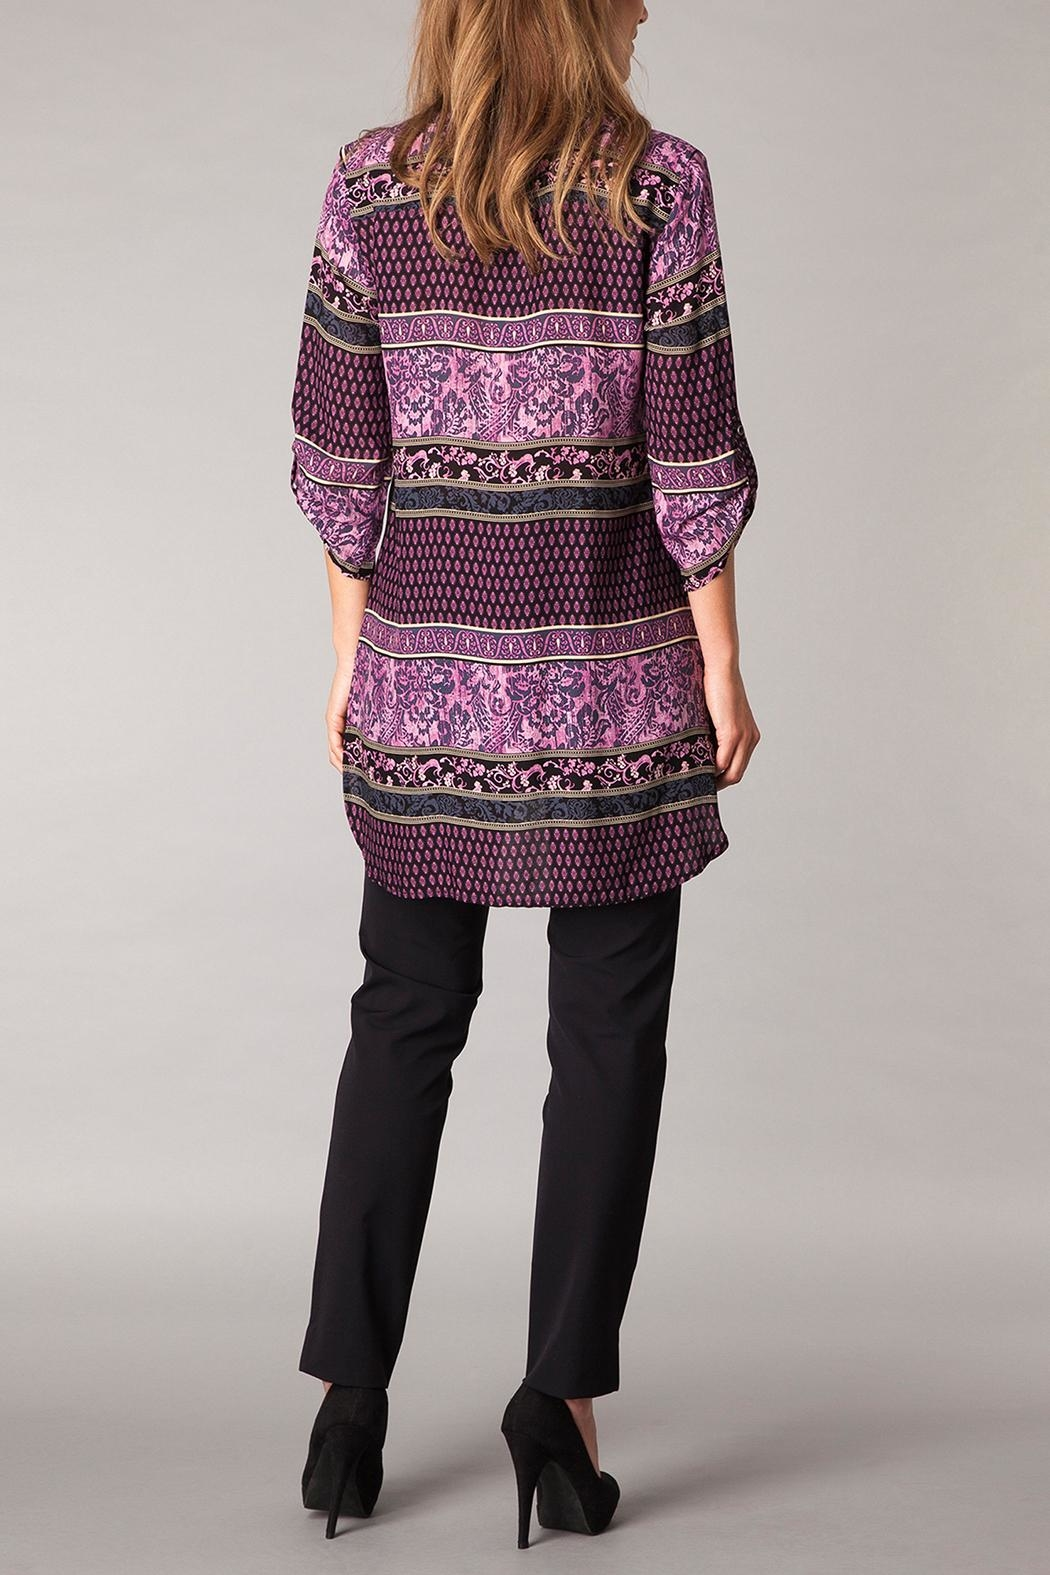 Yest Patterned Purple Tunic Top - Front Full Image